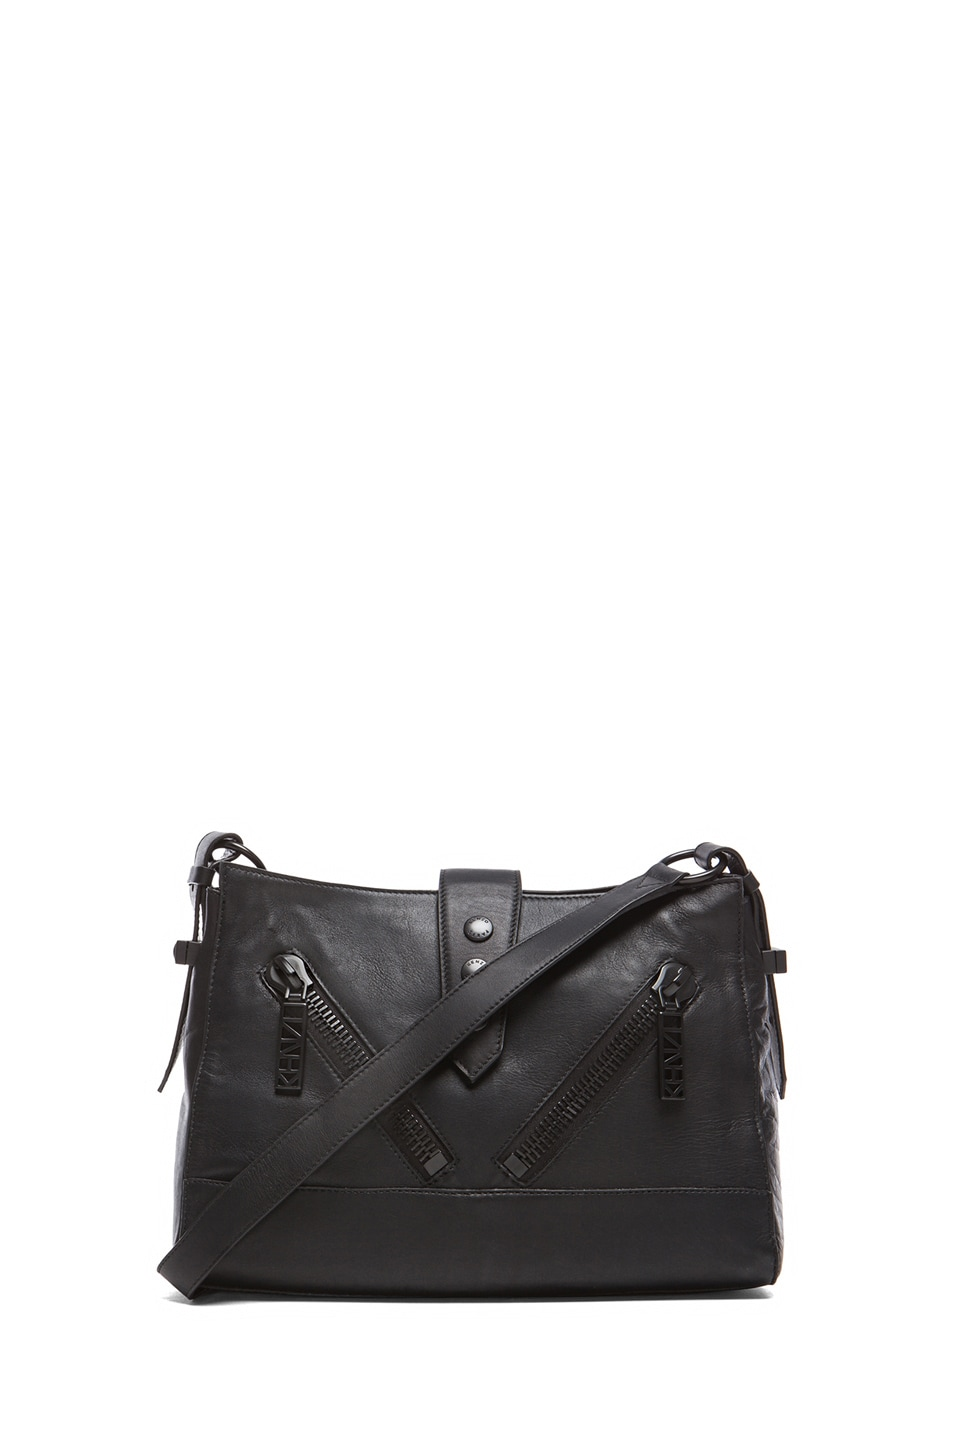 3914f8deb1 Image 1 of Kenzo Medium Kalifornia Bag in Black